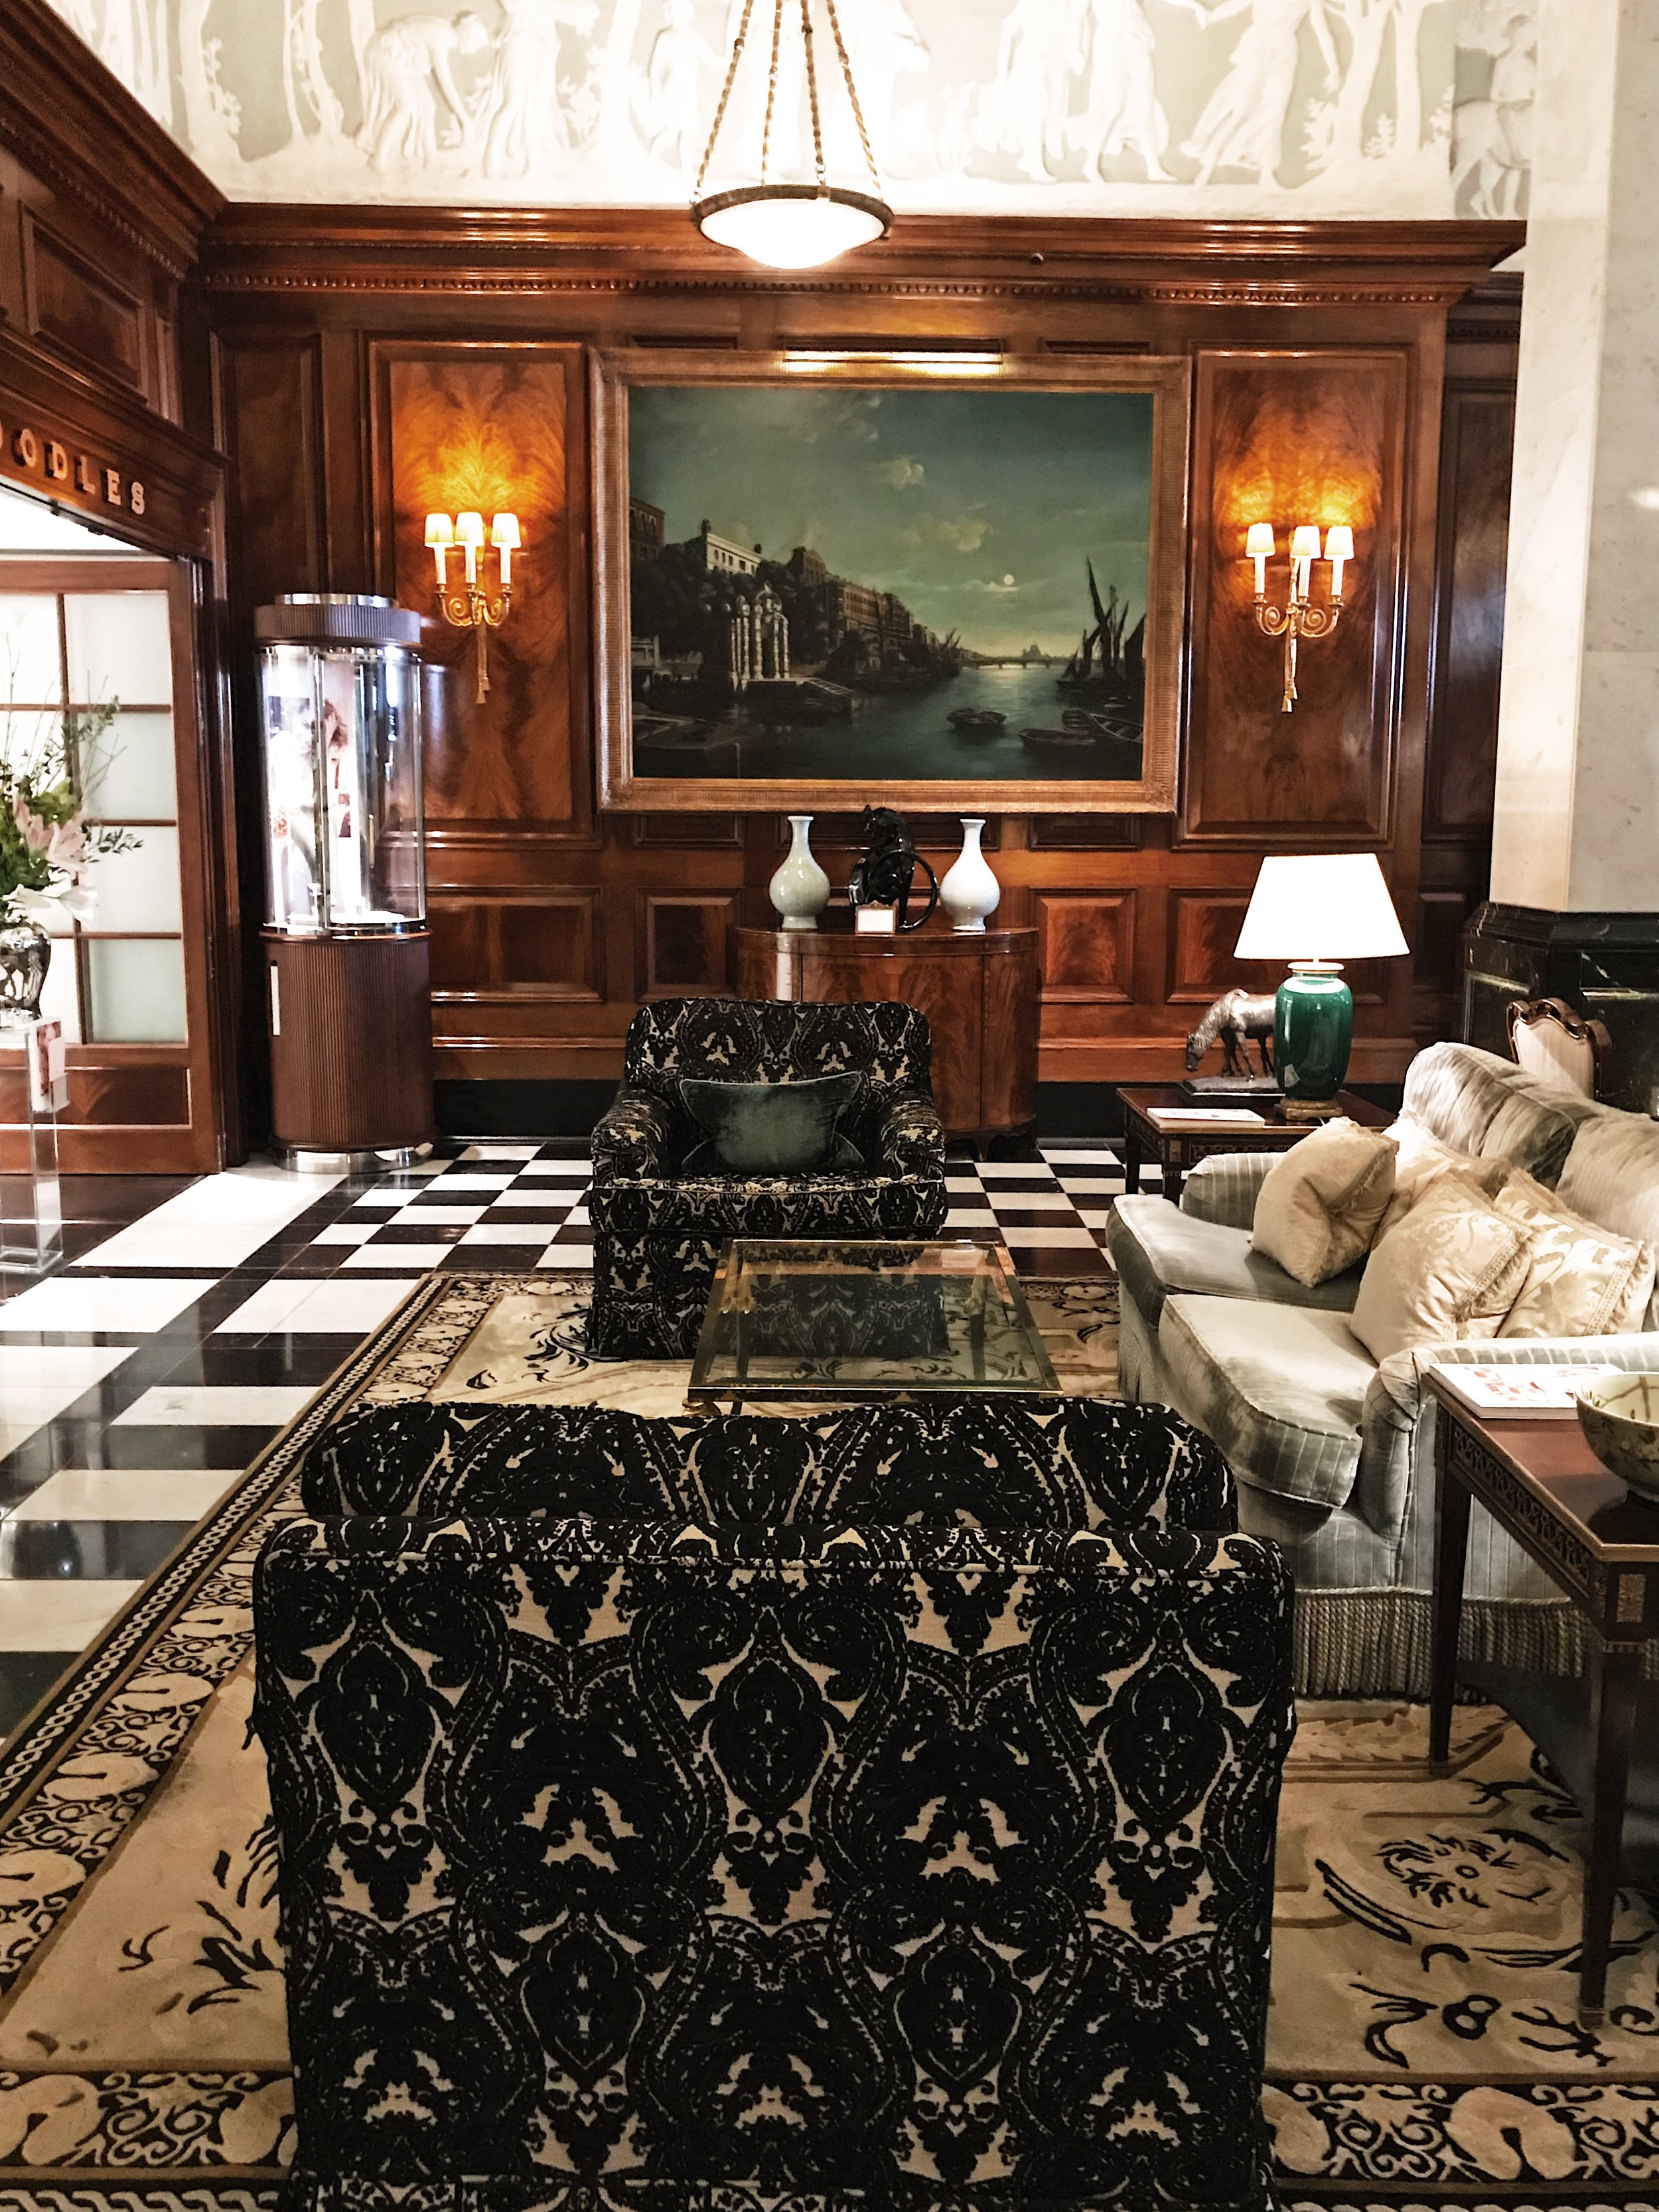 The lobby in the Savoy Front Hall